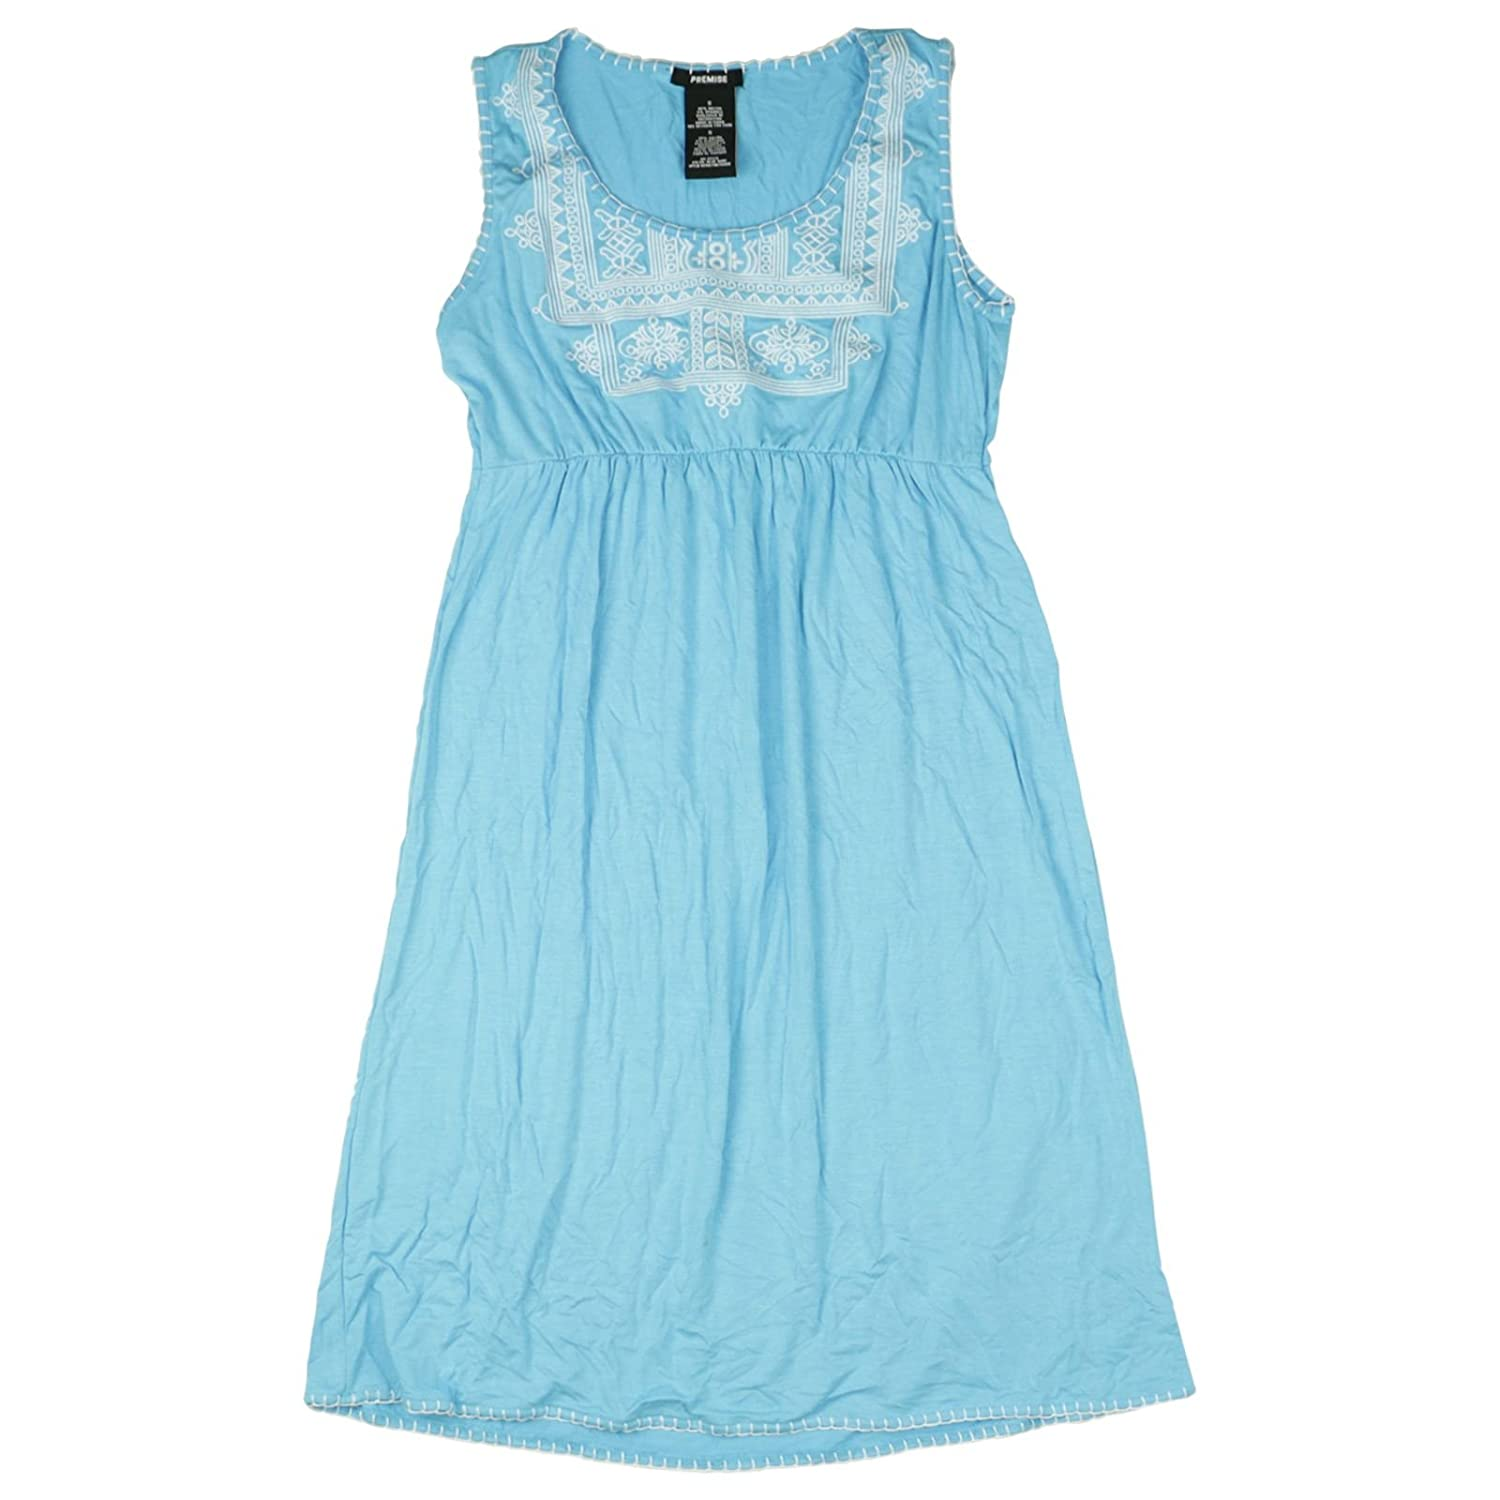 Premise Womens Size Small Embroidered Sleeveless Dress, Blue Surf at Amazon Womens Clothing store: